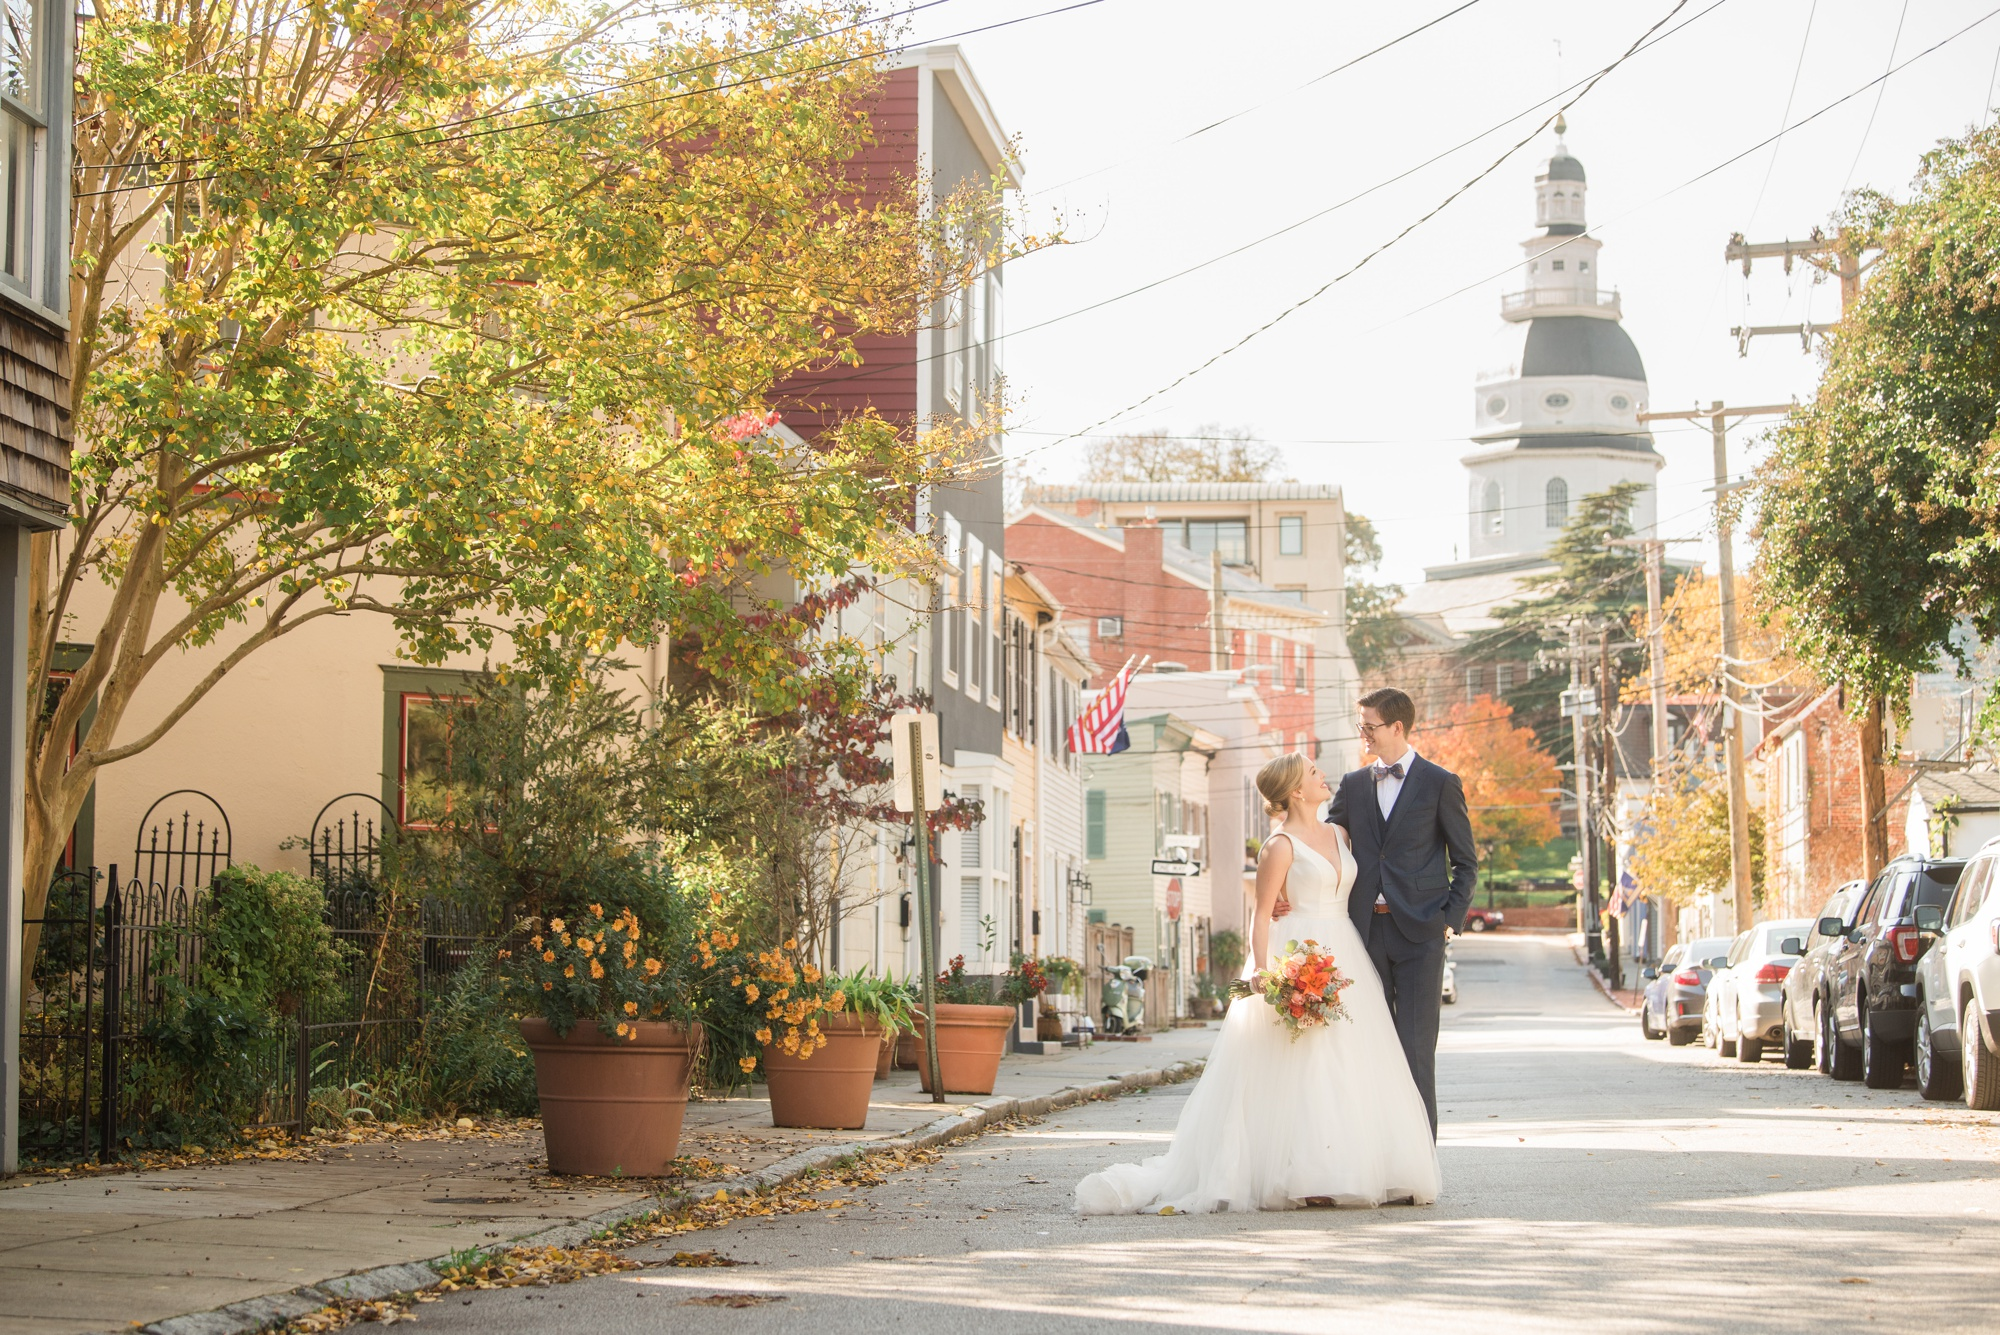 Annapolis William Paca house garden wedding photographer at State house